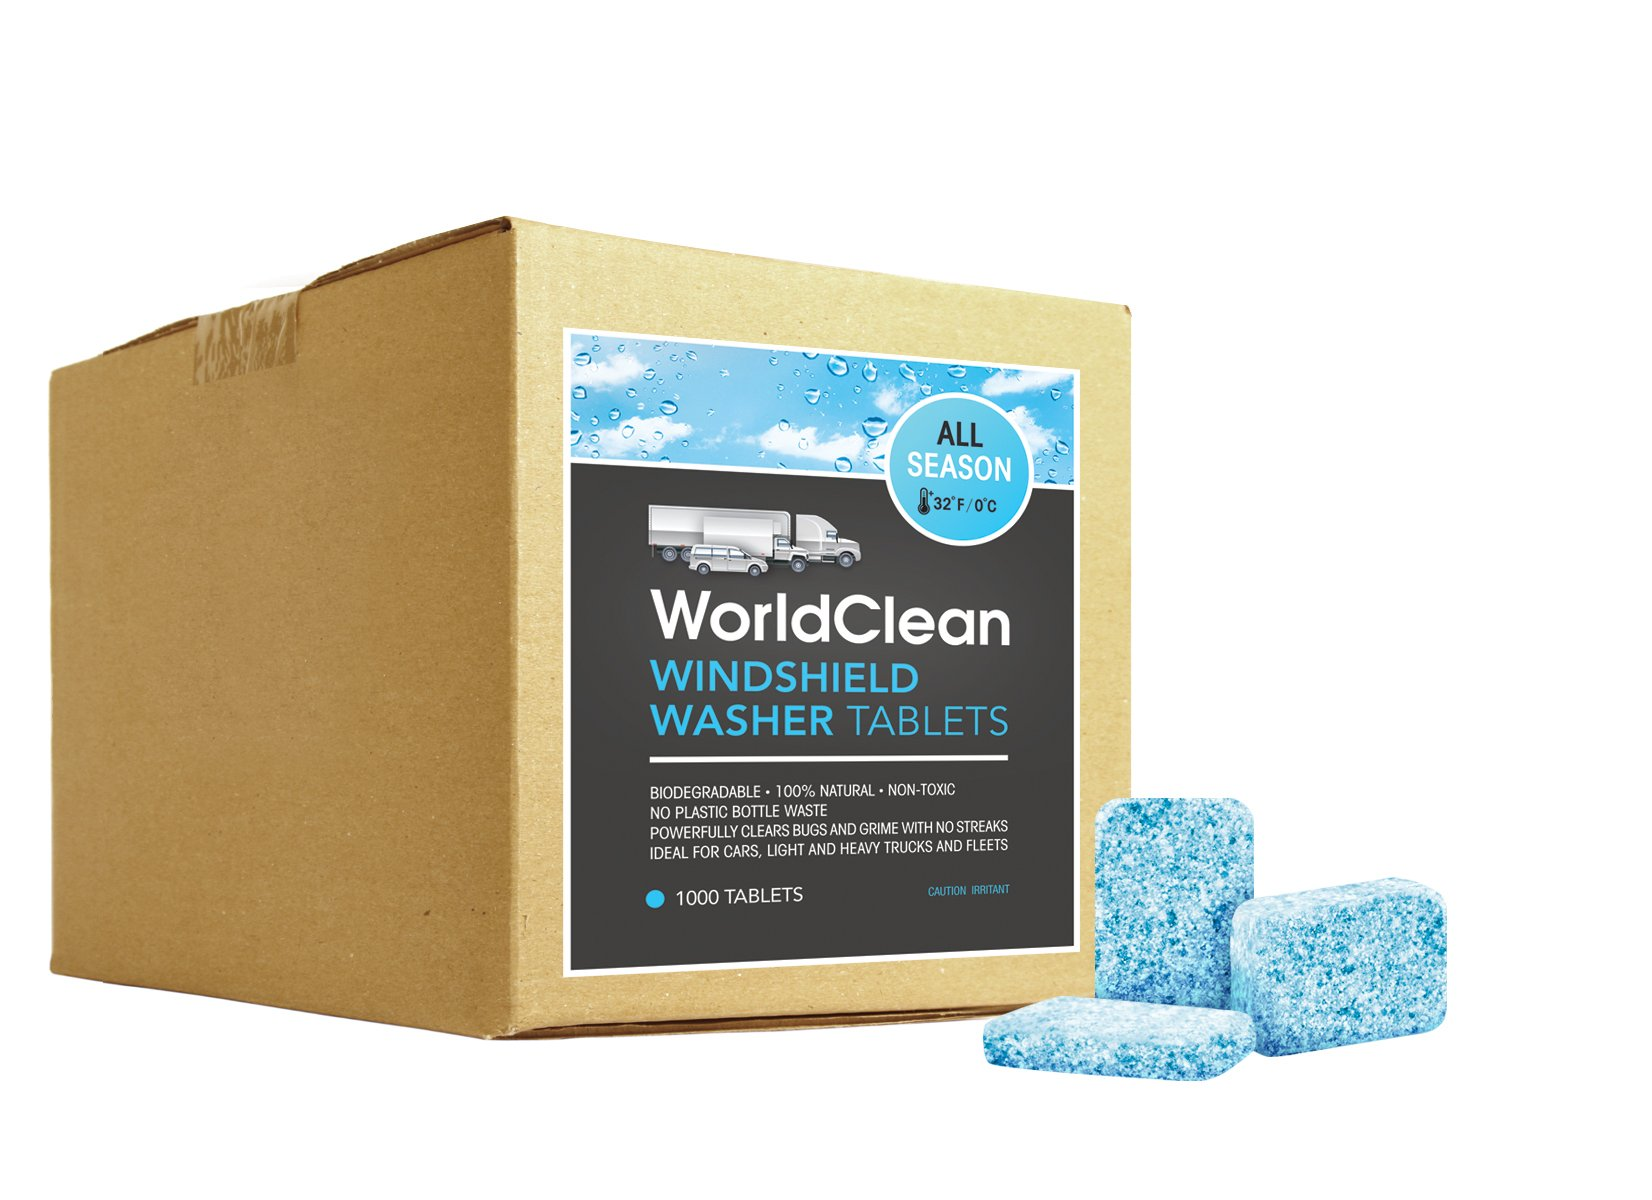 WorldClean biodegradable windshield washer 1000x tablets (yields 1000gal)